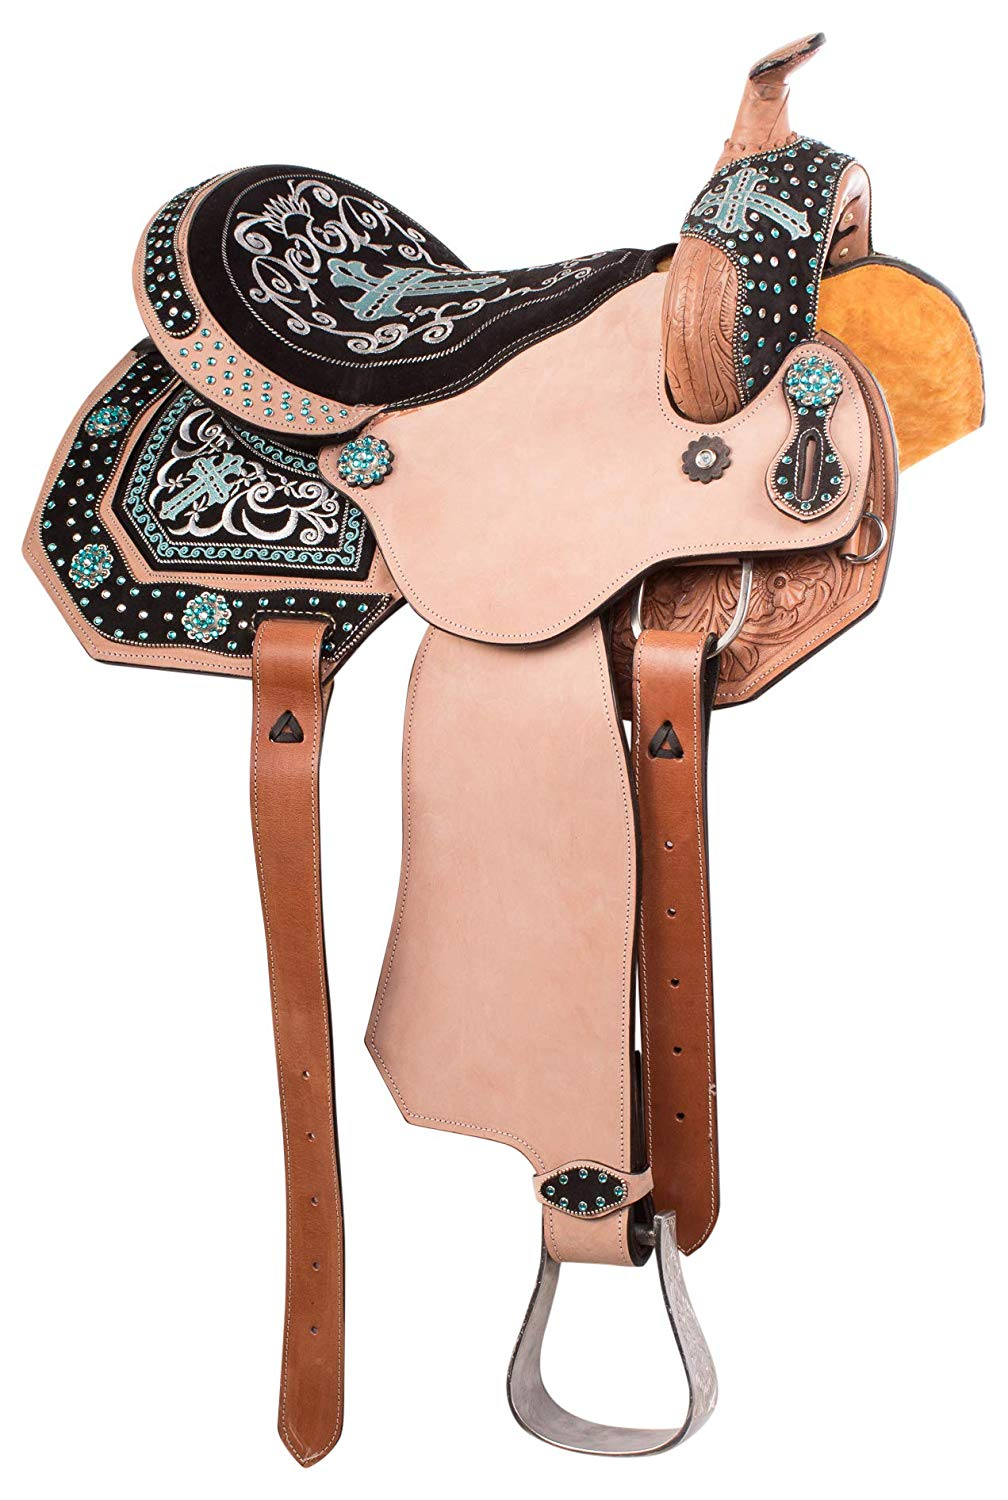 Turquoise Western Leather Horse Barrel Racing Bling Bridle Headstall Tack Set Sporting Goods Breast Collars Romeinformation It